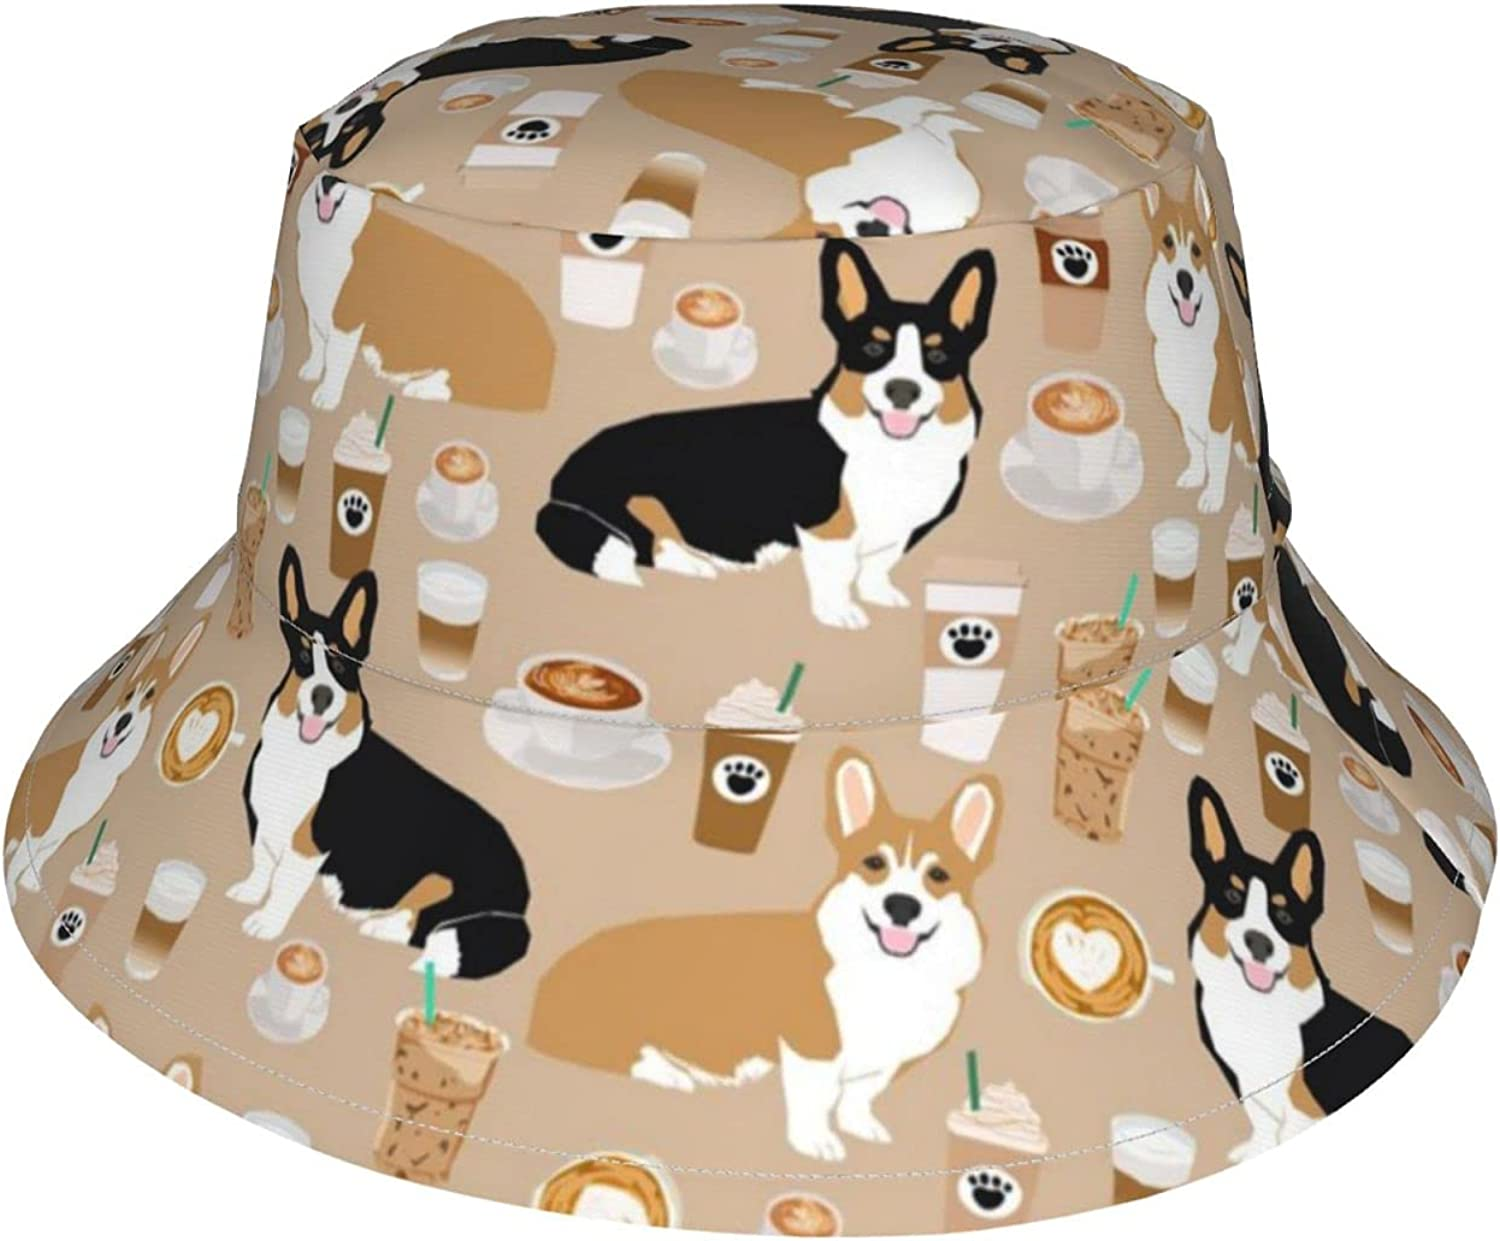 Baby Sun hat Corgis Louisville-Jefferson County Mall Coffee Protective Super beauty product restock quality top! UPF 50+ Toddler Bucket